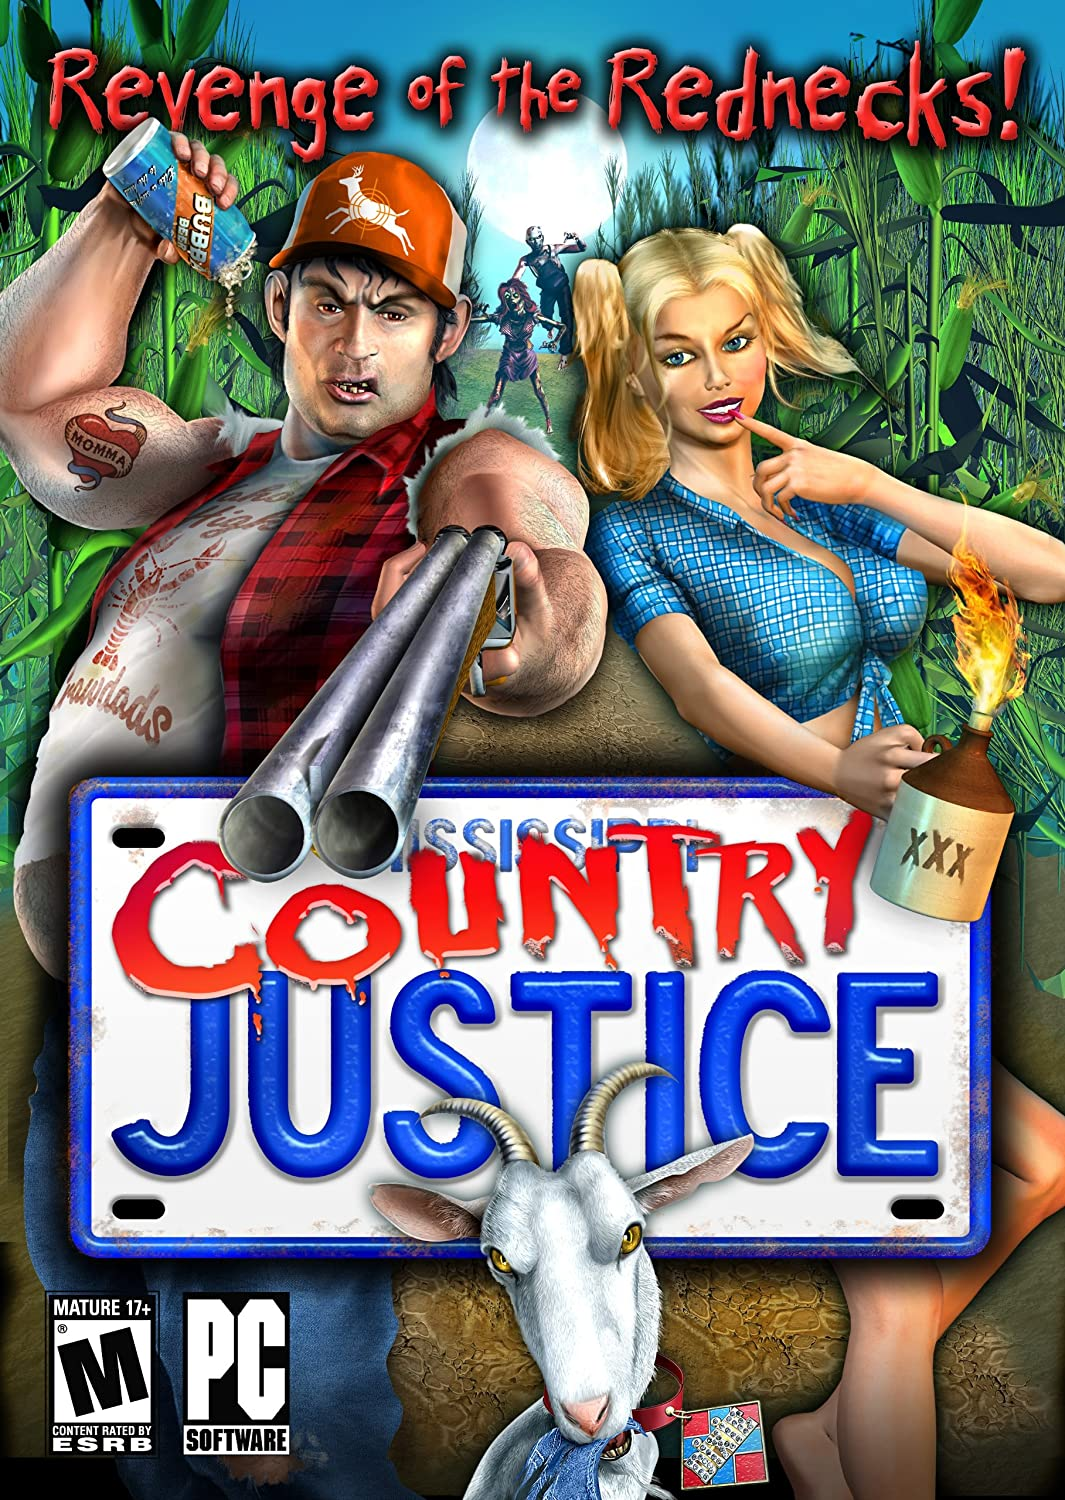 amazon com country justice rev of the rednecks download video